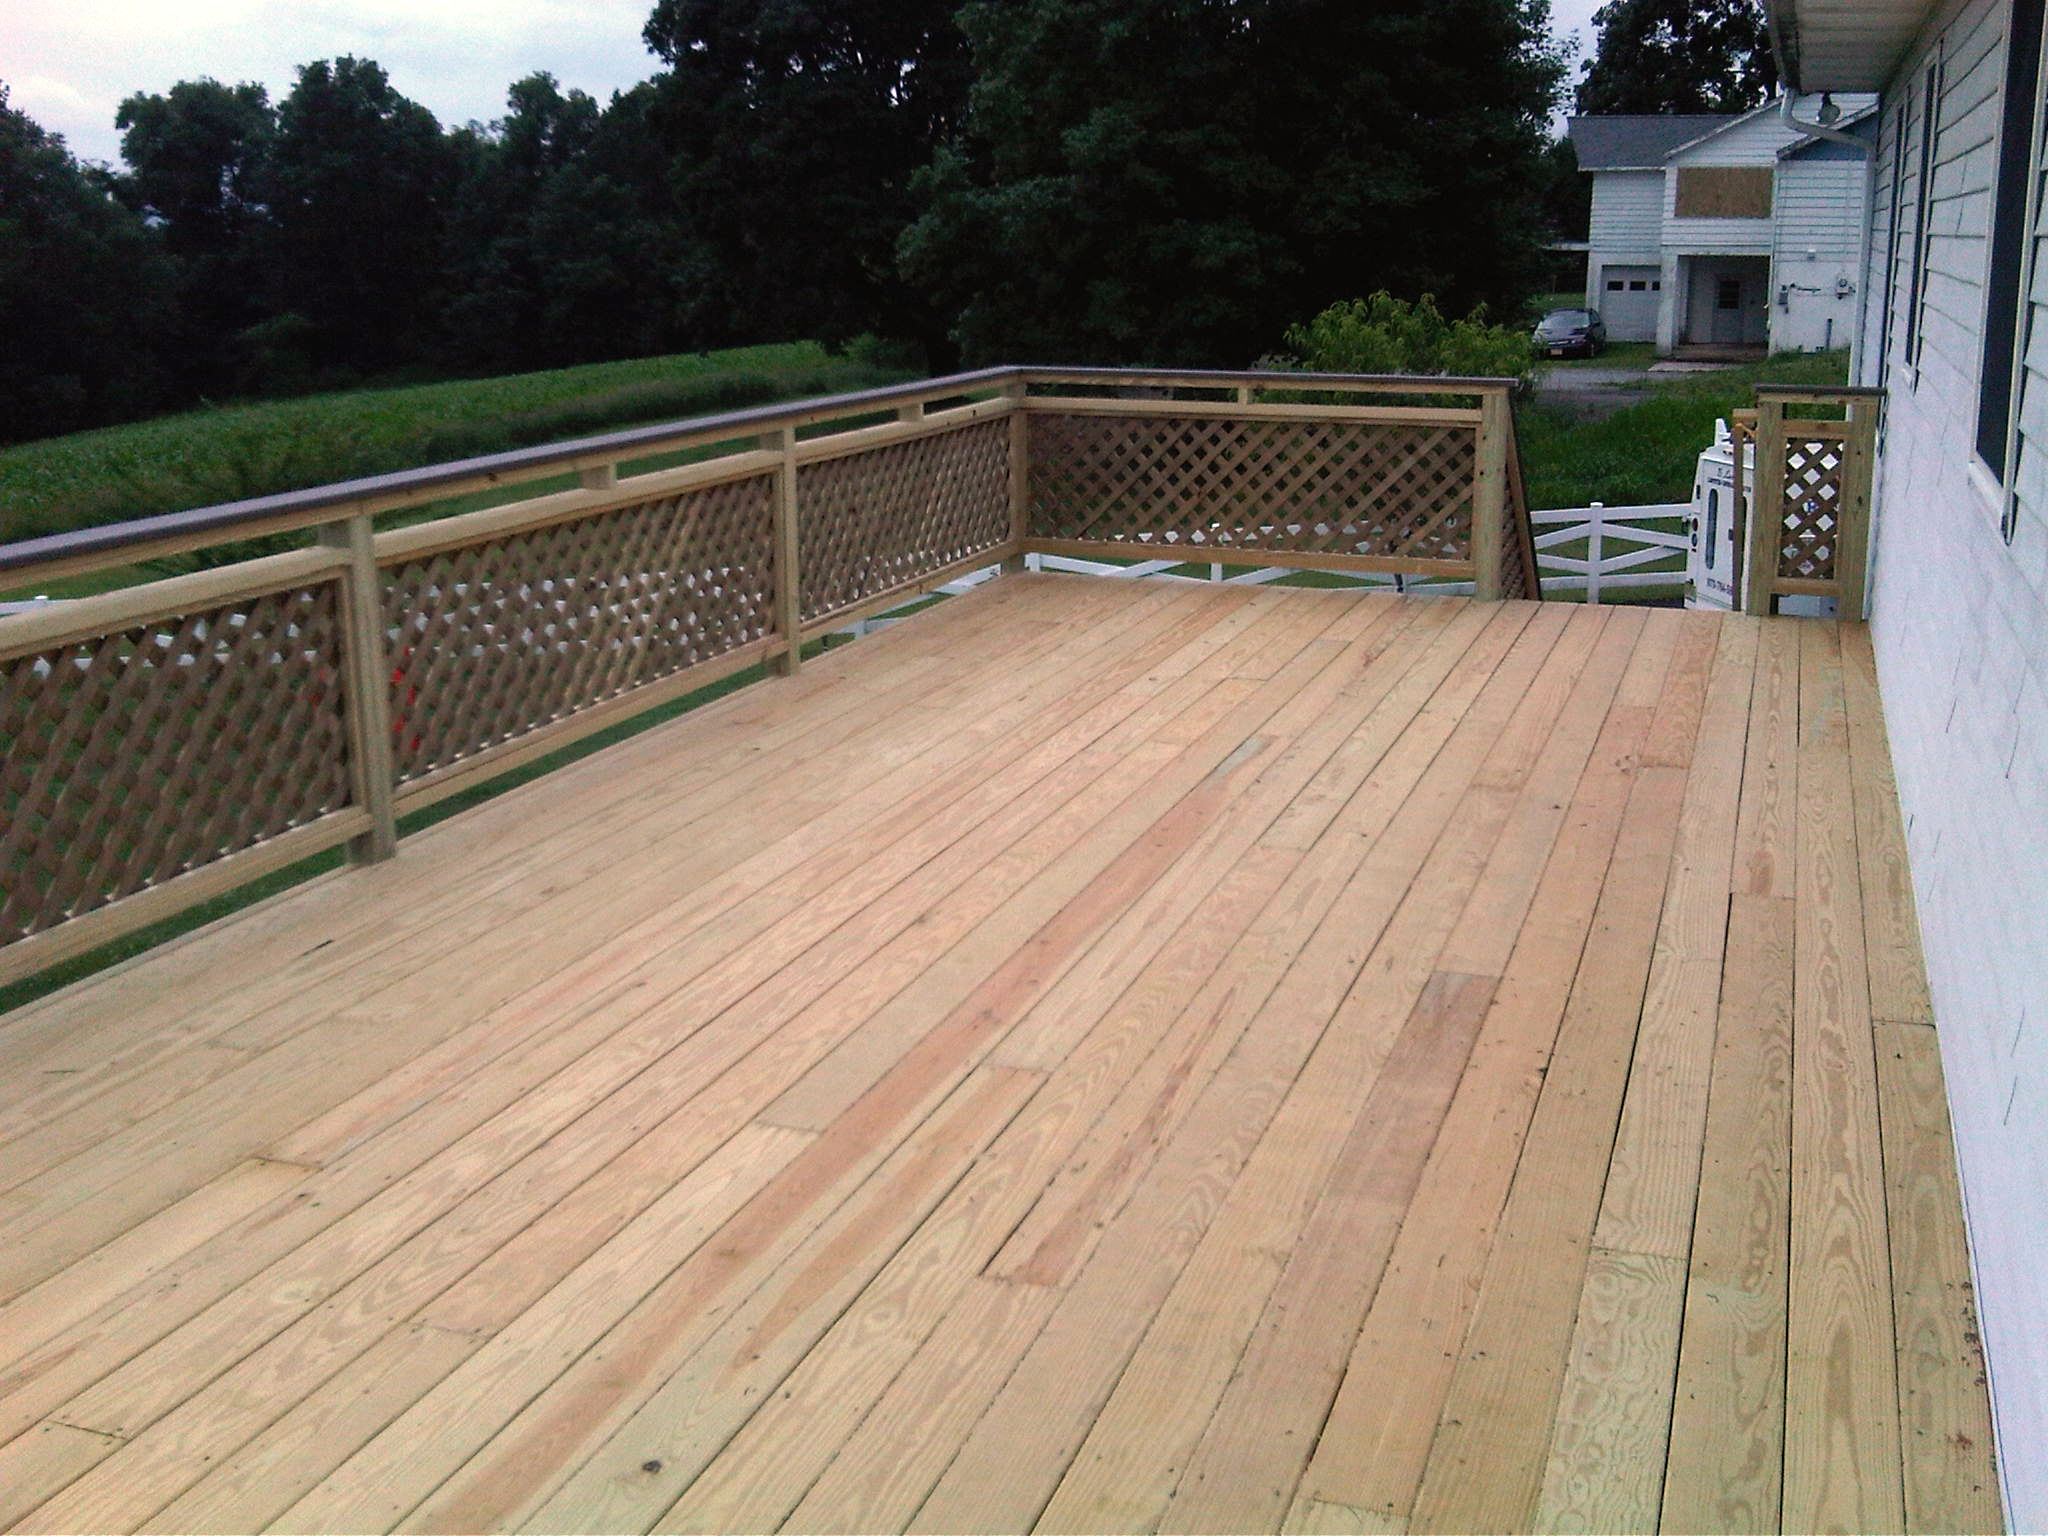 12' X 32' Pressure Treated Deck 2